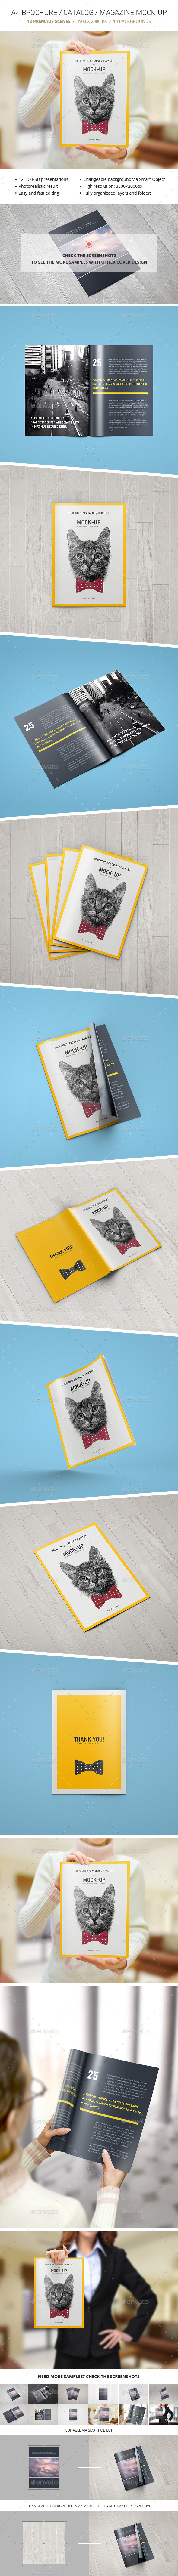 GraphicRiver A4 Brochure Catalogue Magazine Mockup 10905520